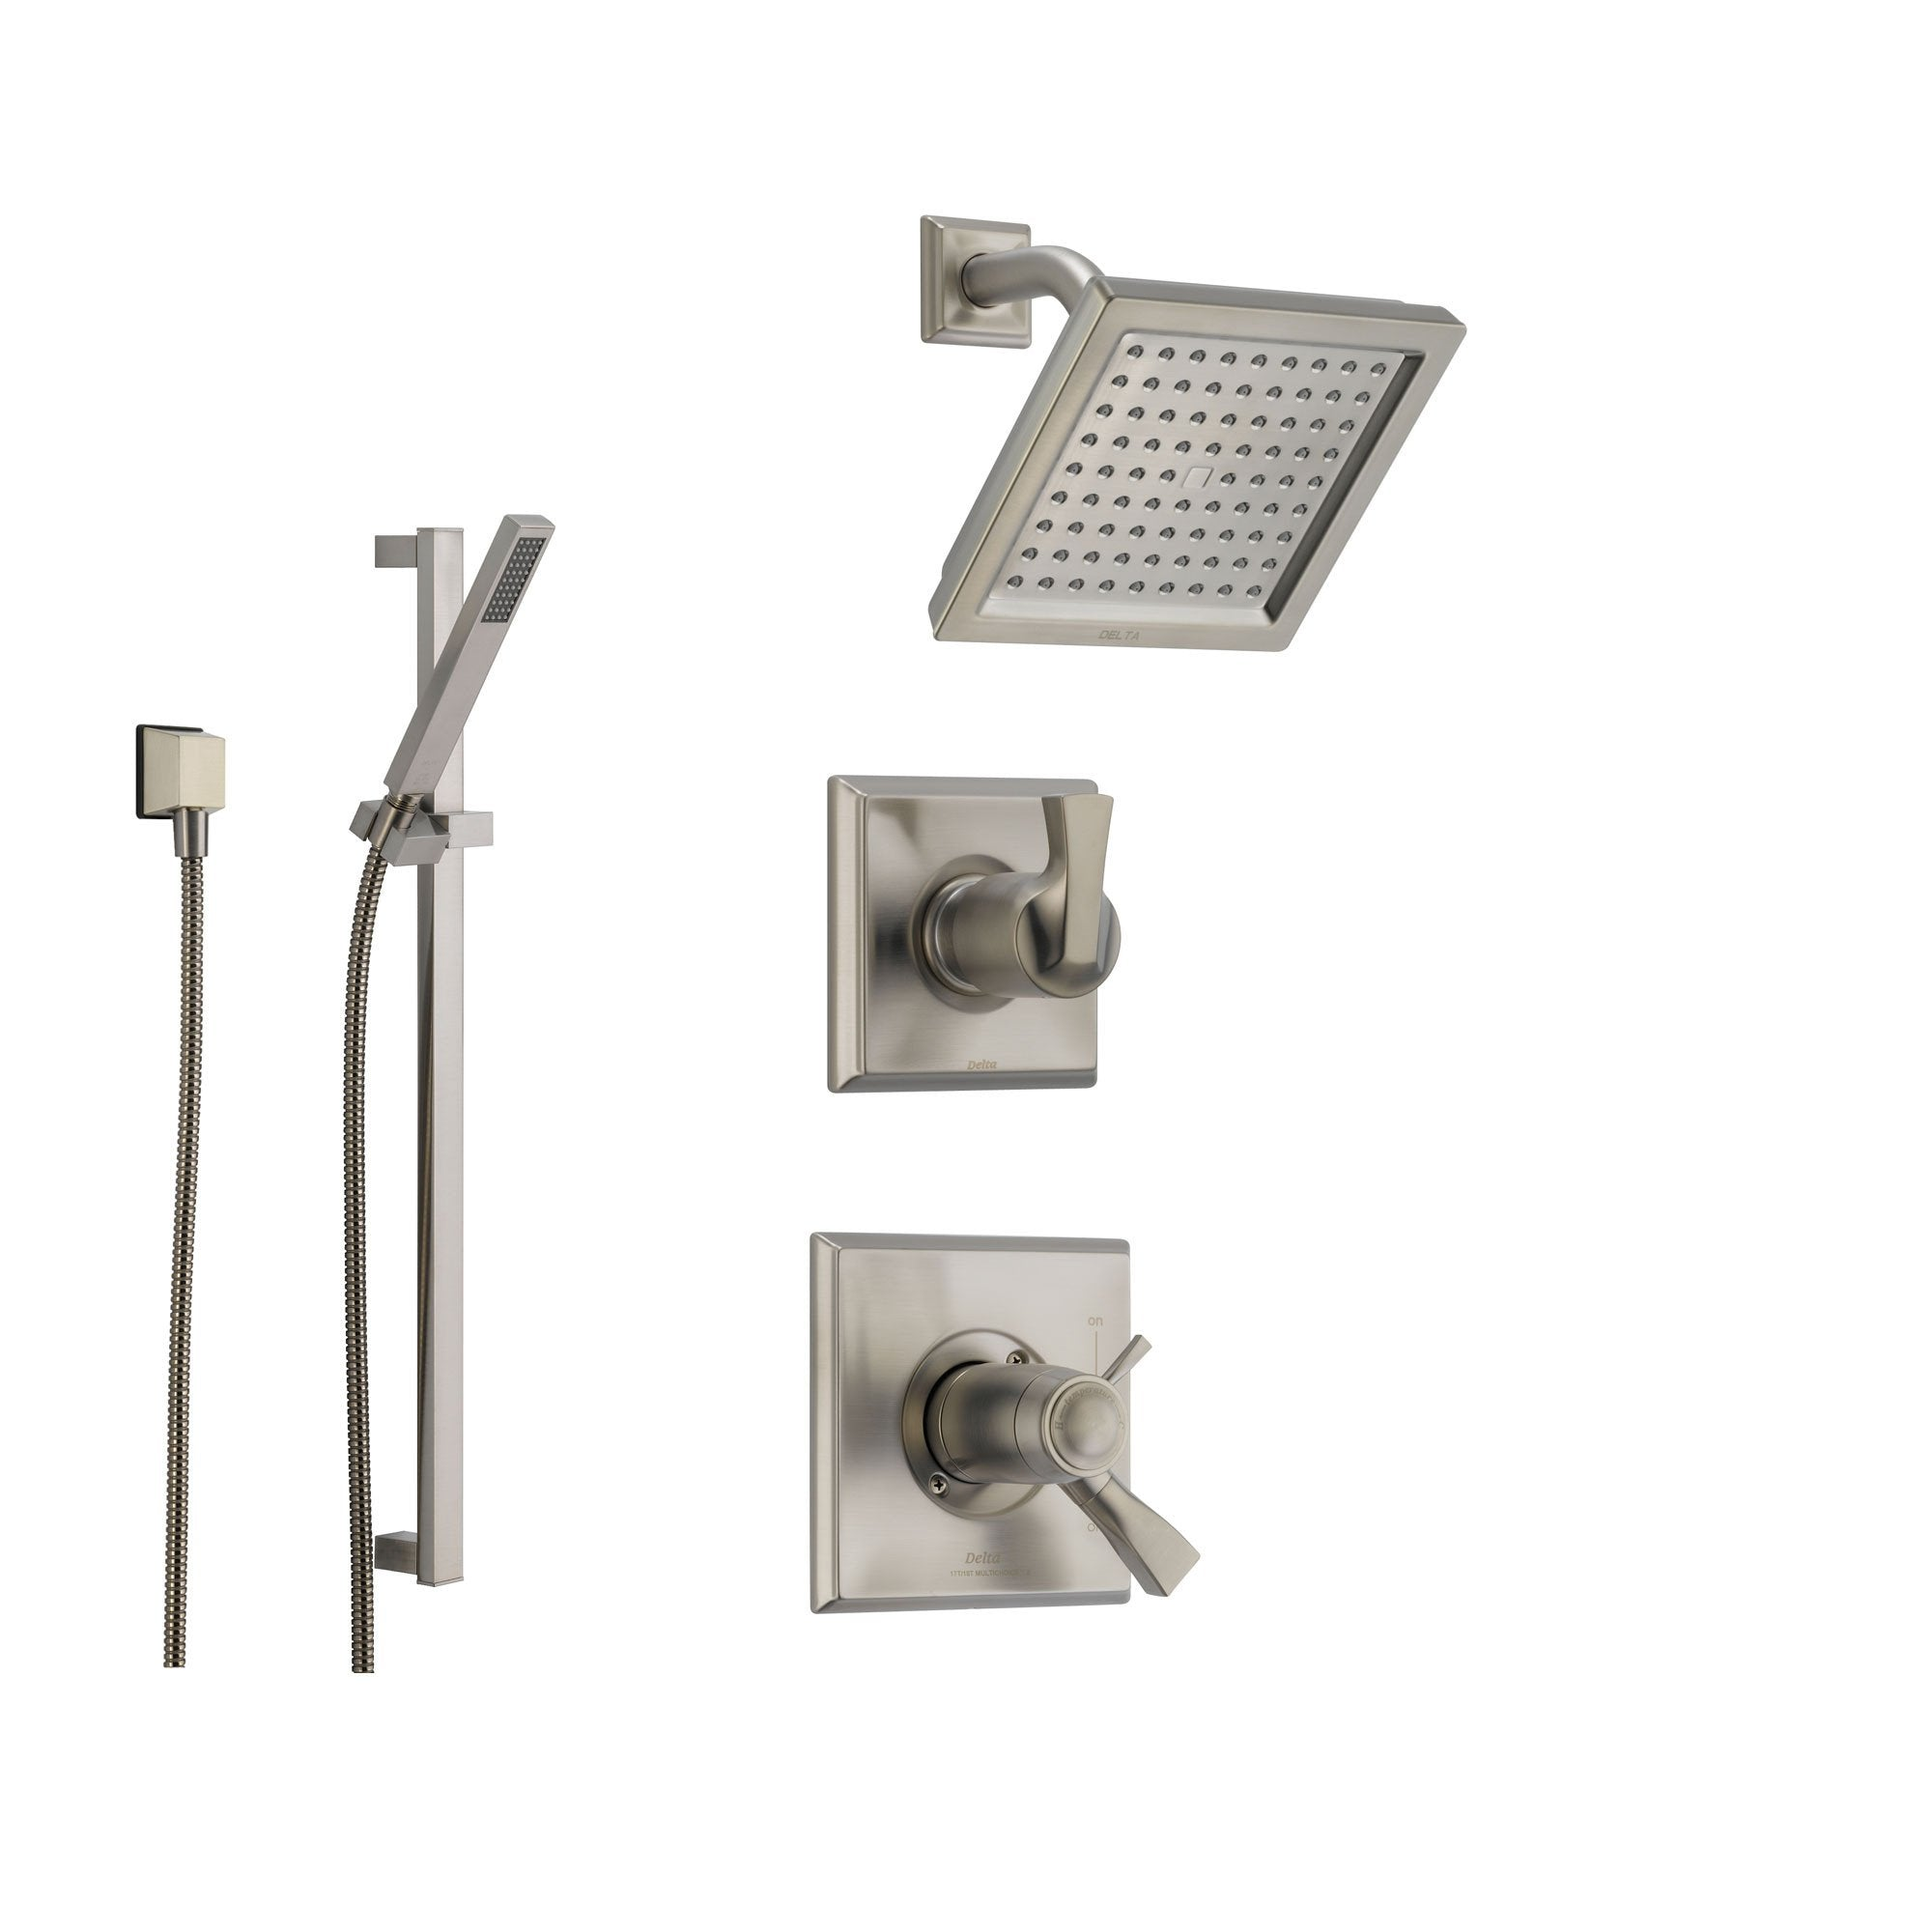 ss delta shower detail ashlyn faucet handle brilliance asp one lg stainless systems